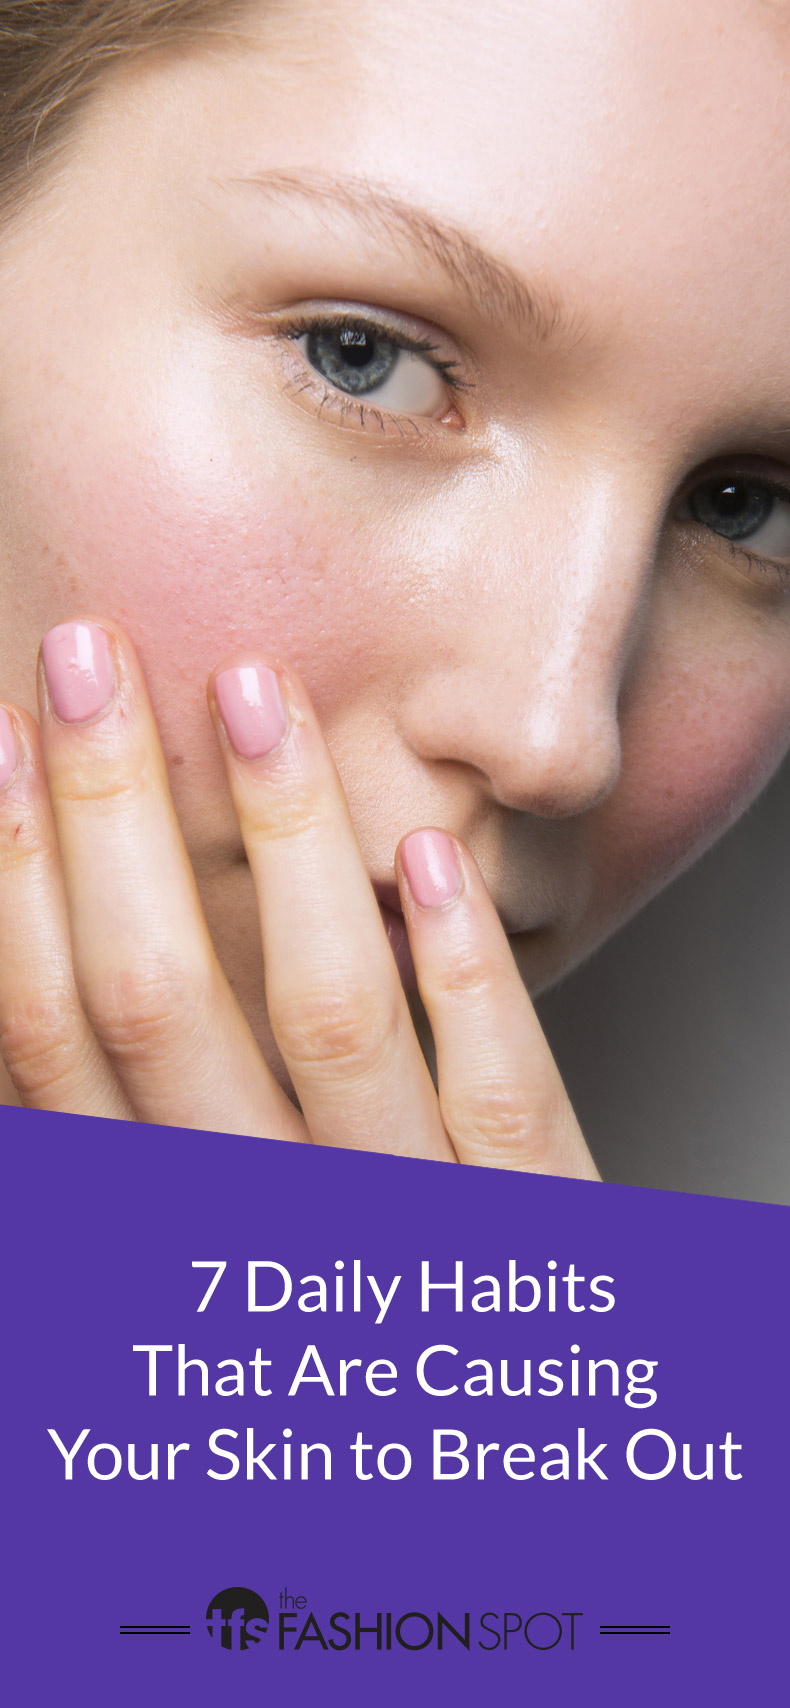 Adult Acne Causes: 7 Daily Habits Causing Your Breakouts